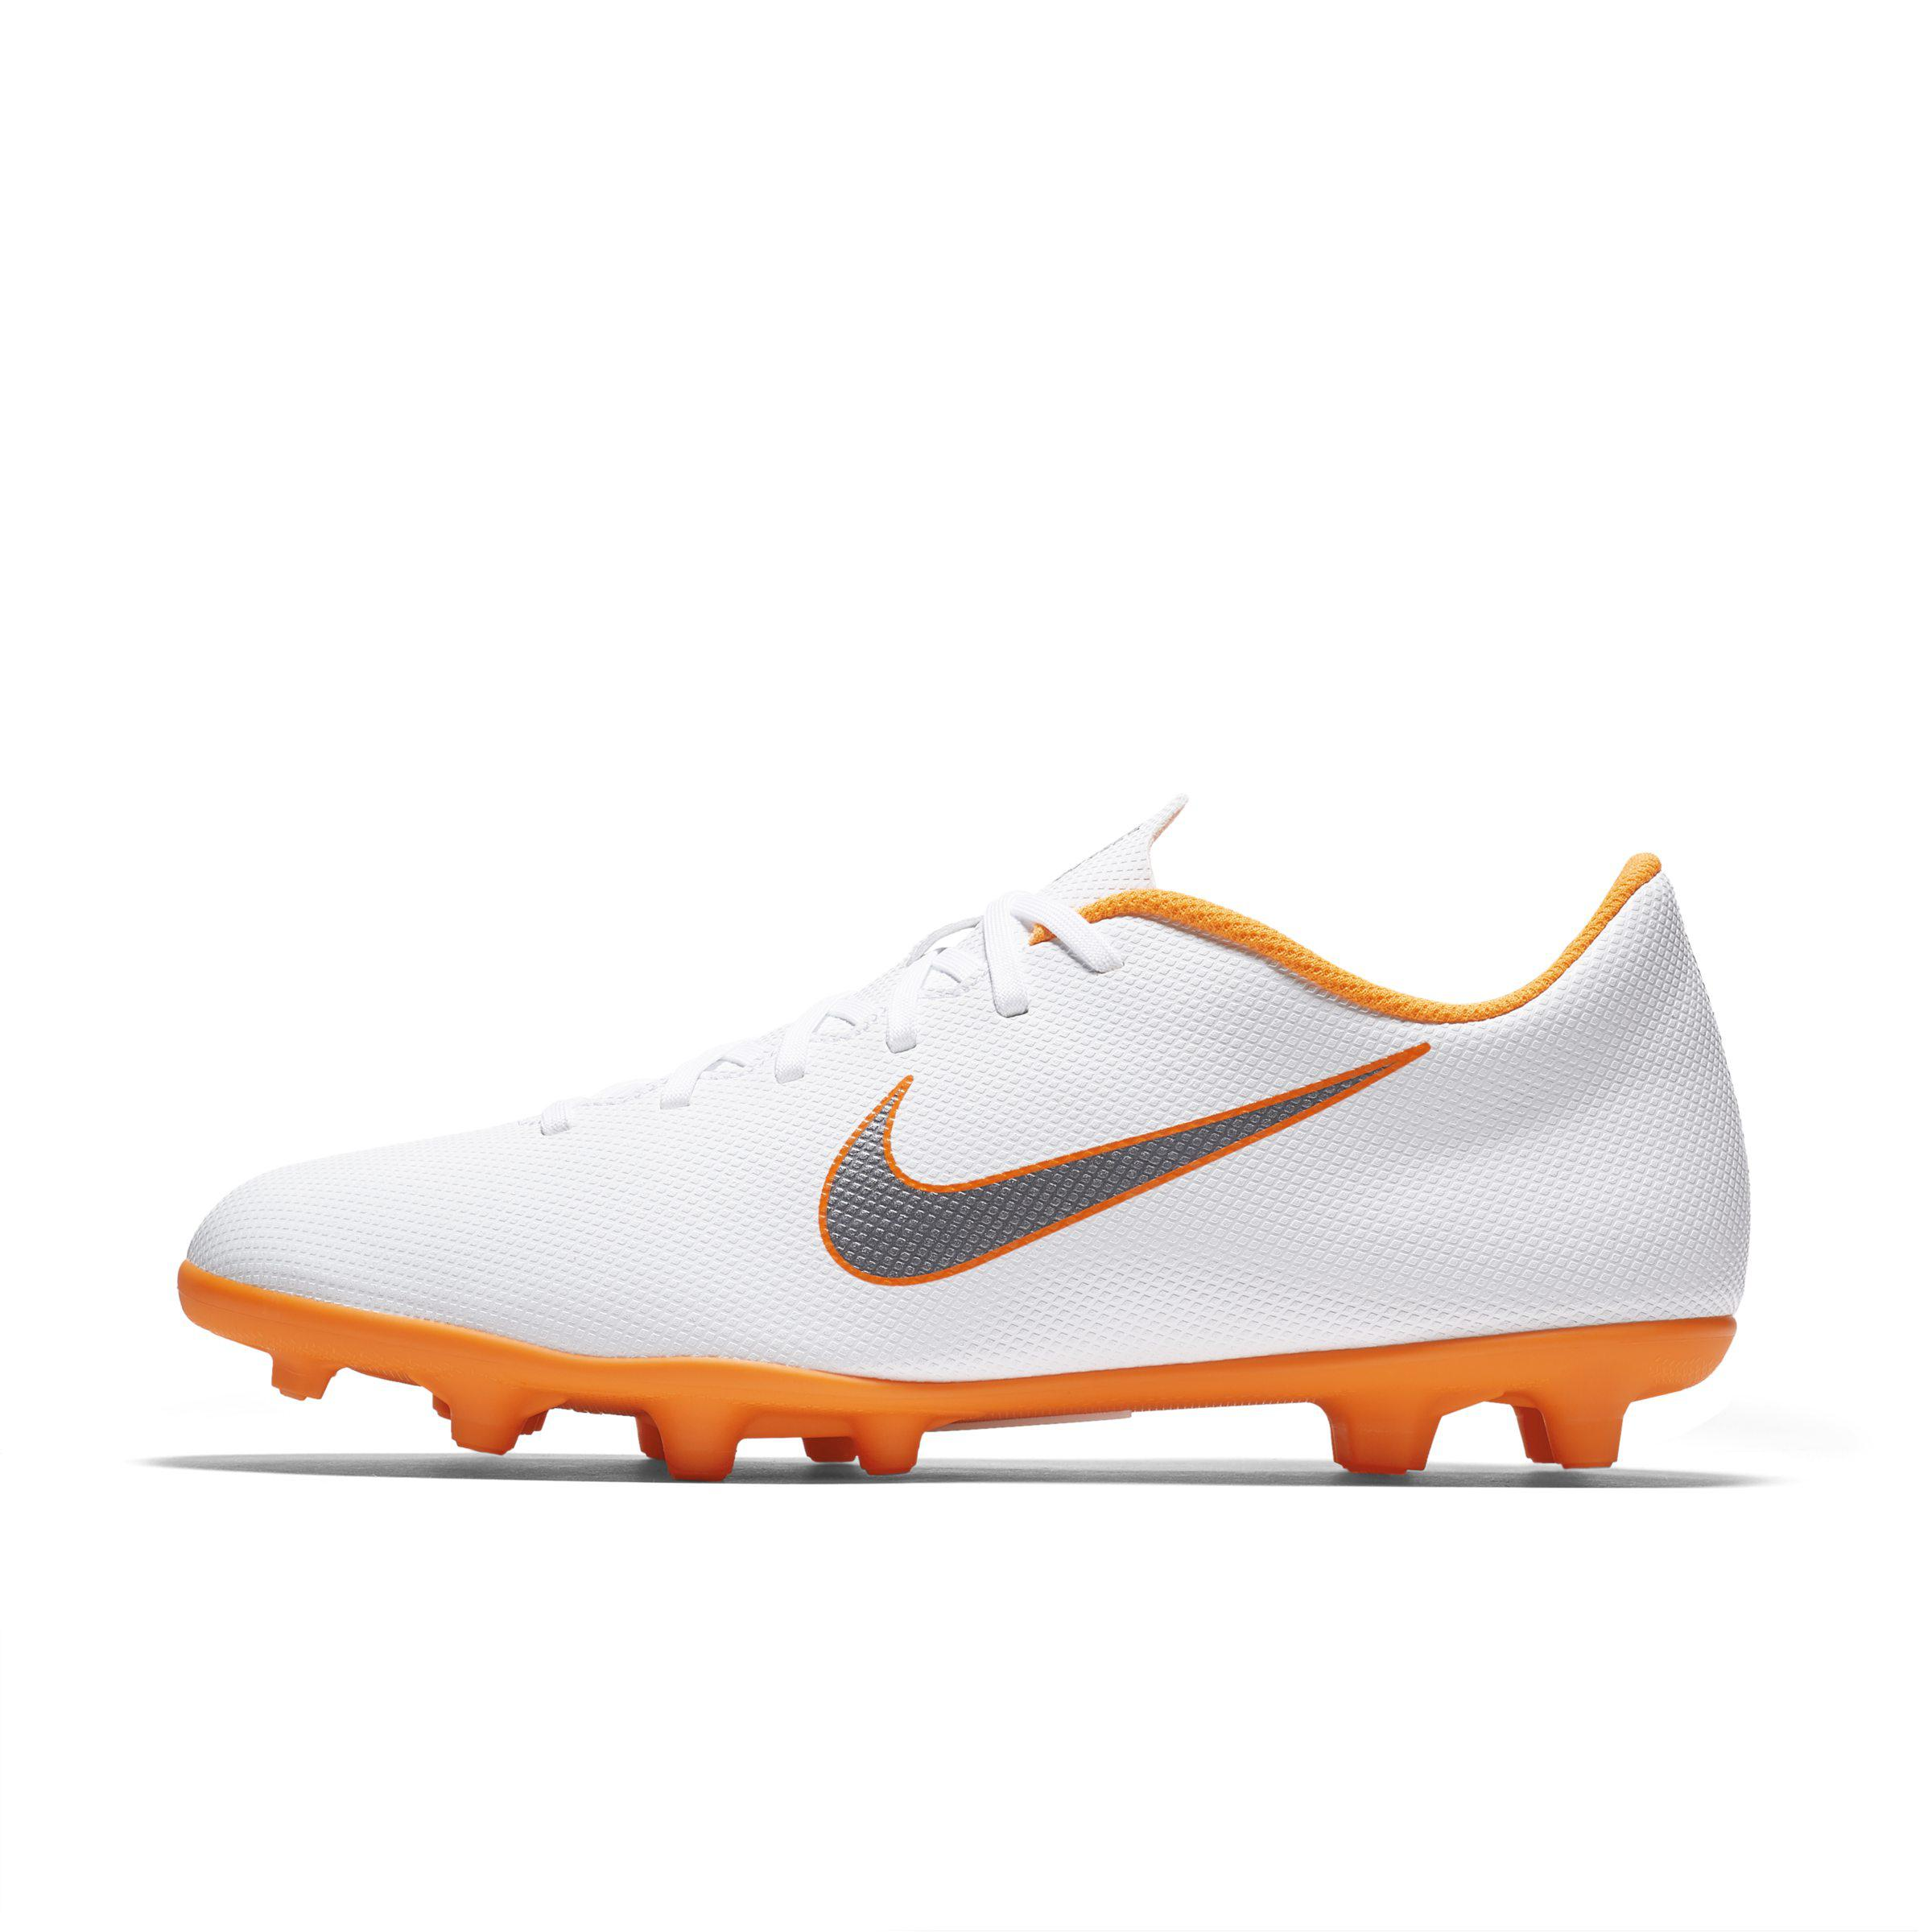 Nike Mercurial Vapor Xii Club Just Do It Mg Multi-ground Football Boot in  White - Lyst